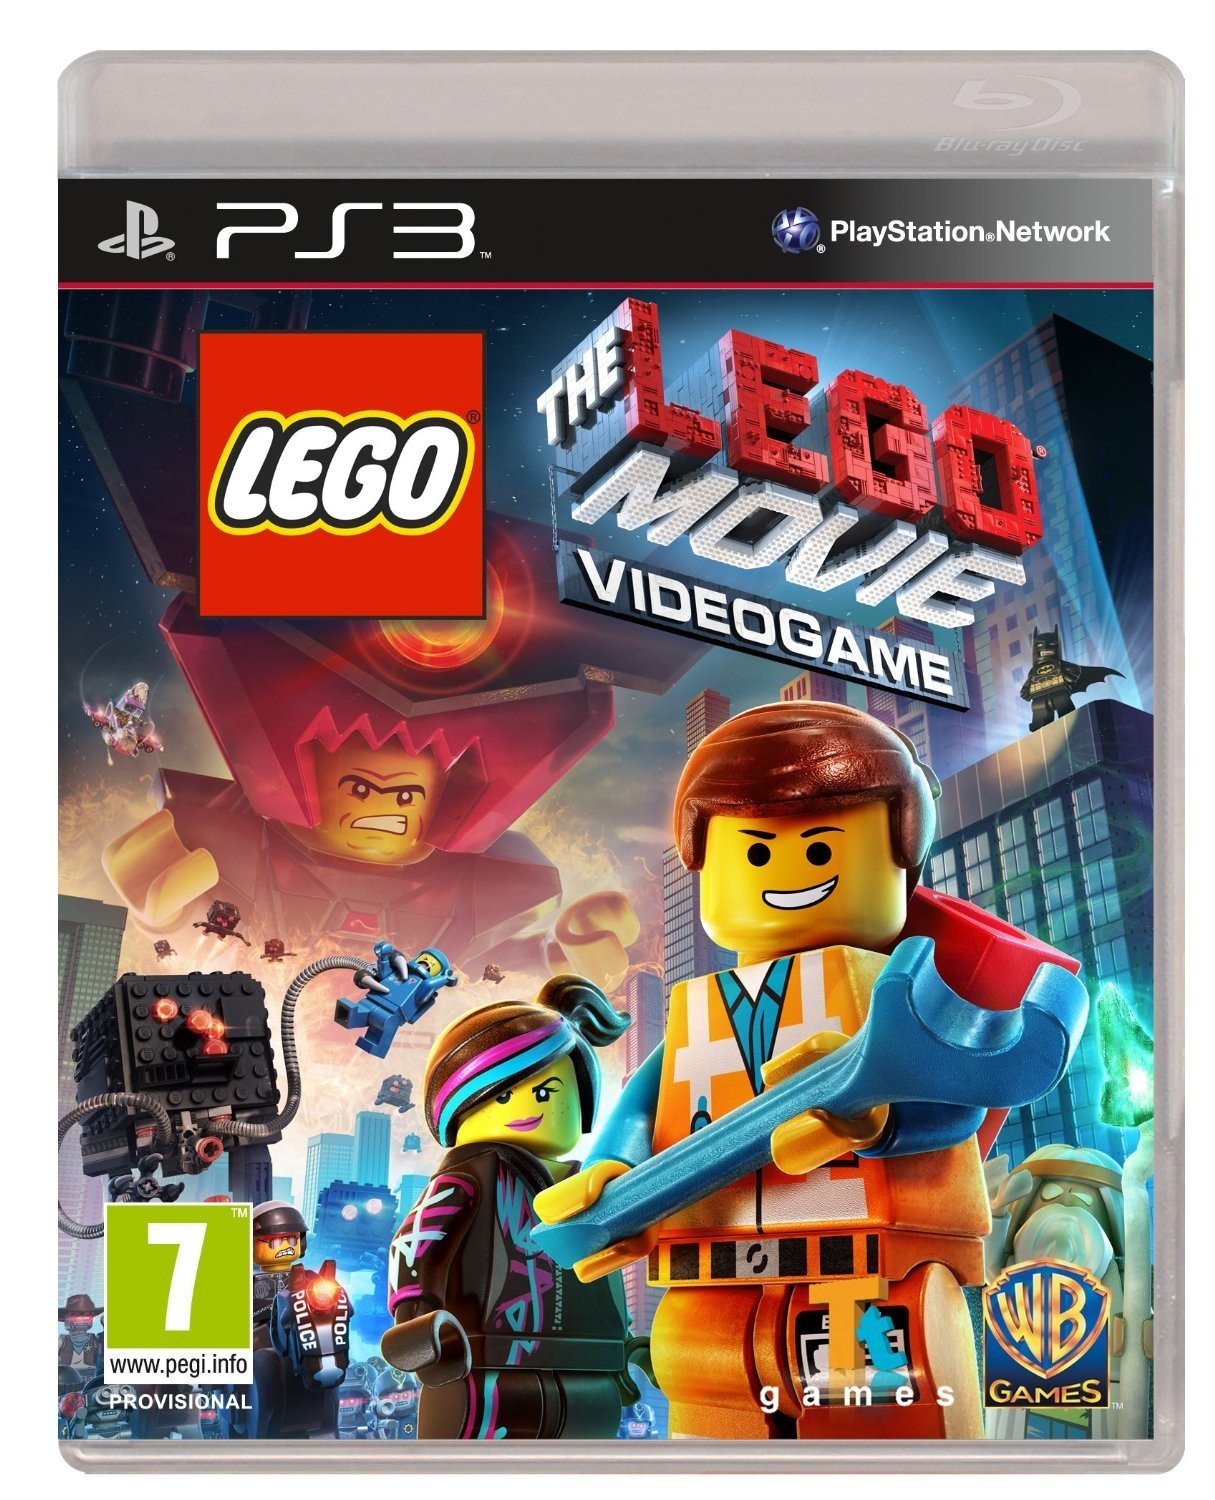 The Lego Movie Videogame (Xbox 360) Review 3